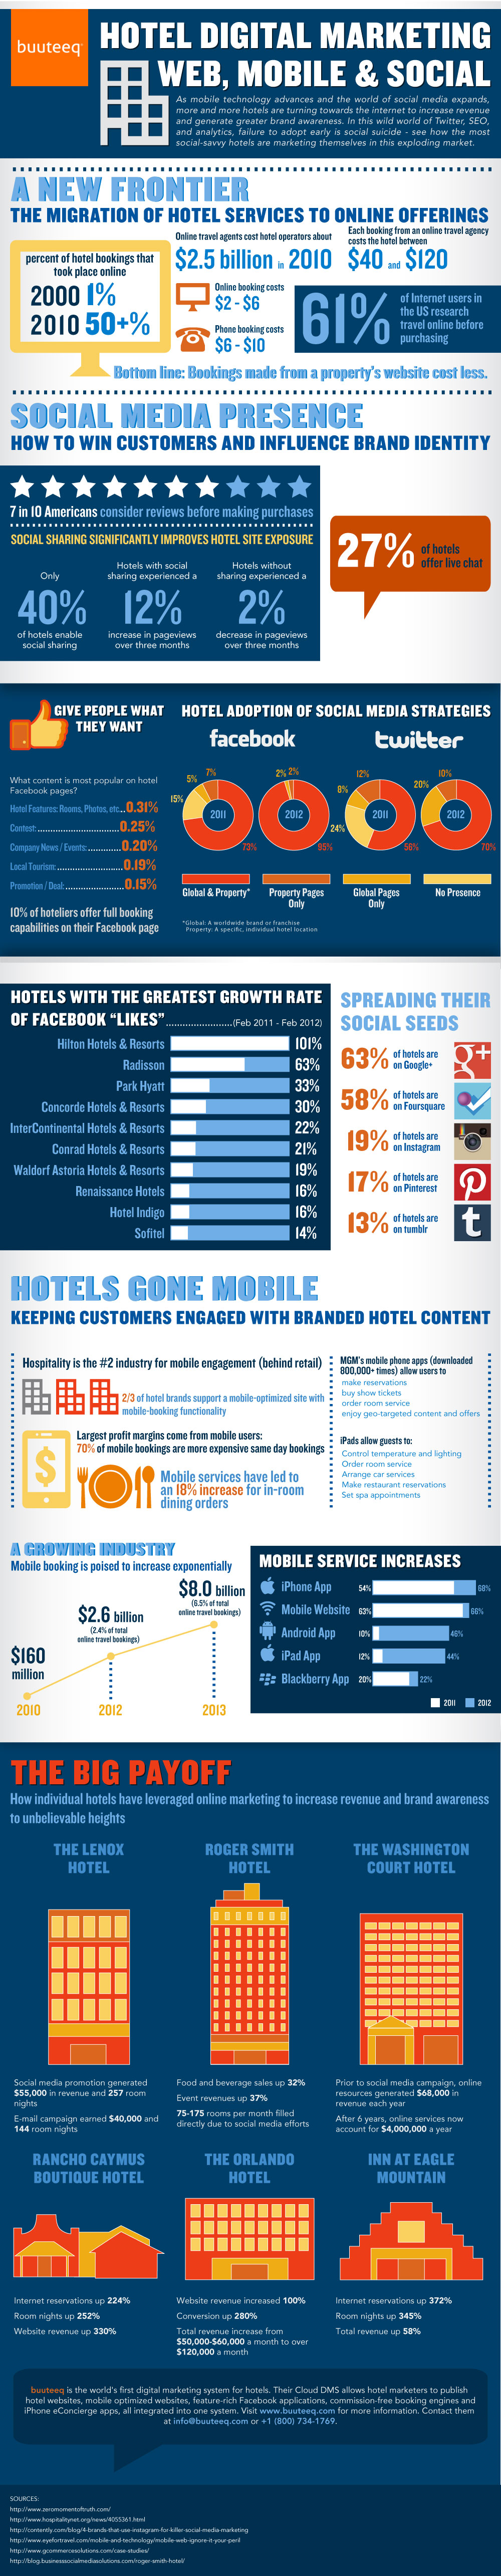 Hotel marketing on the Internet